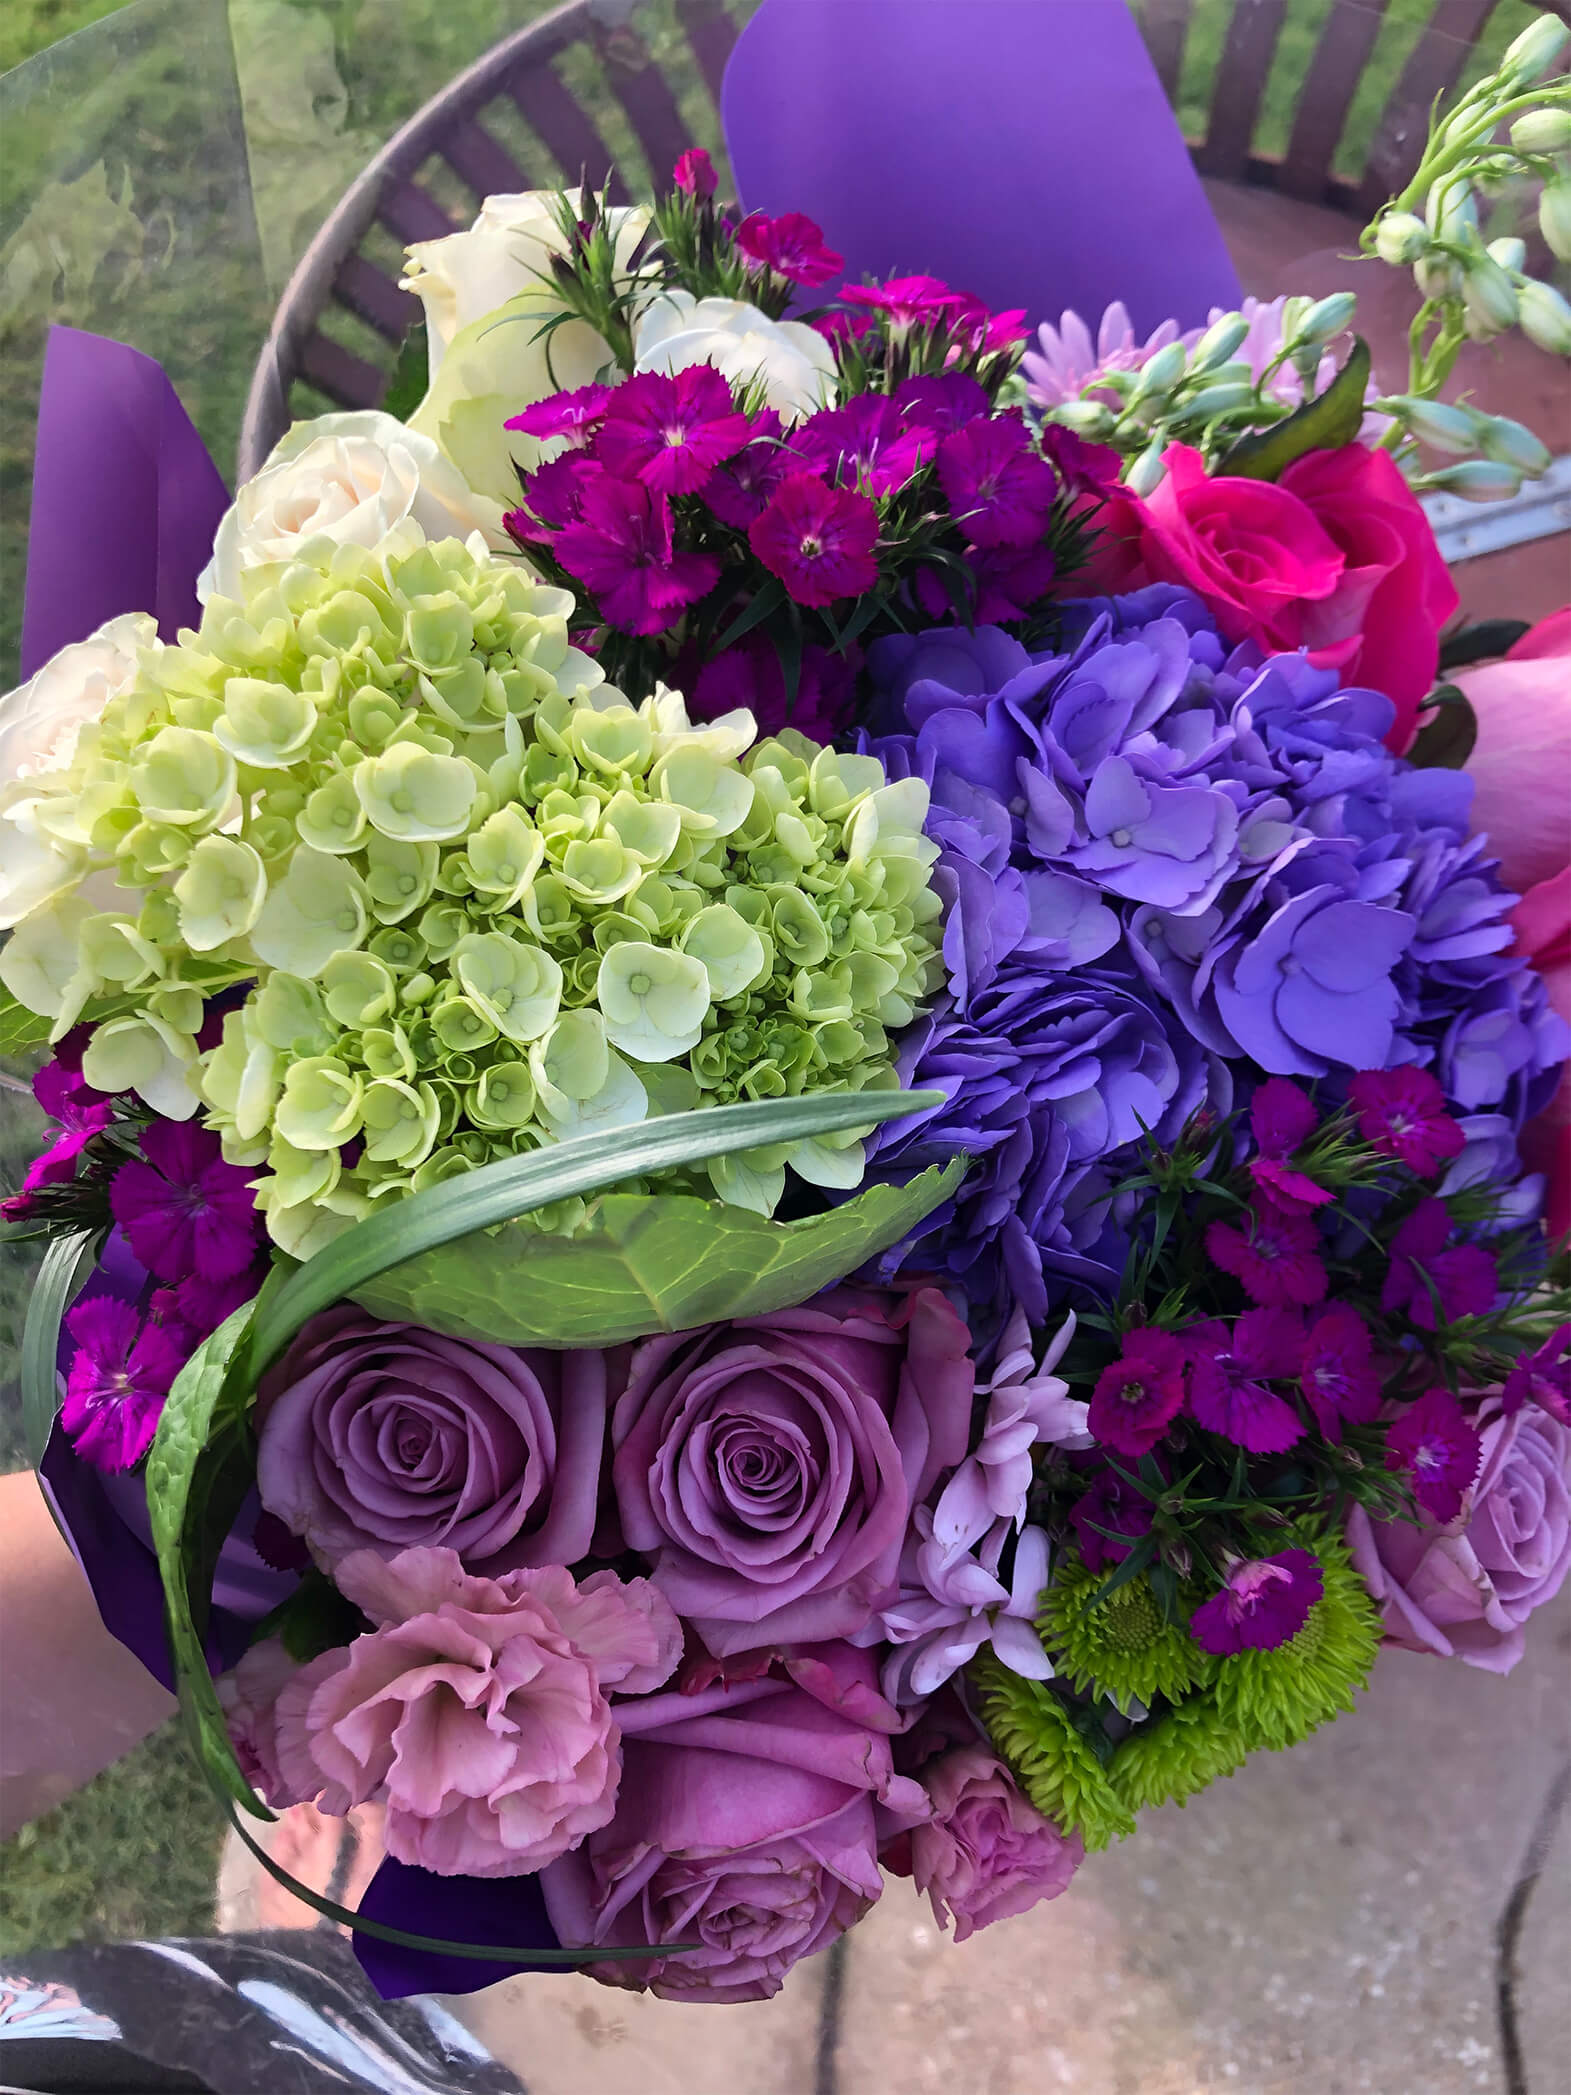 Close up of a flower bouquet